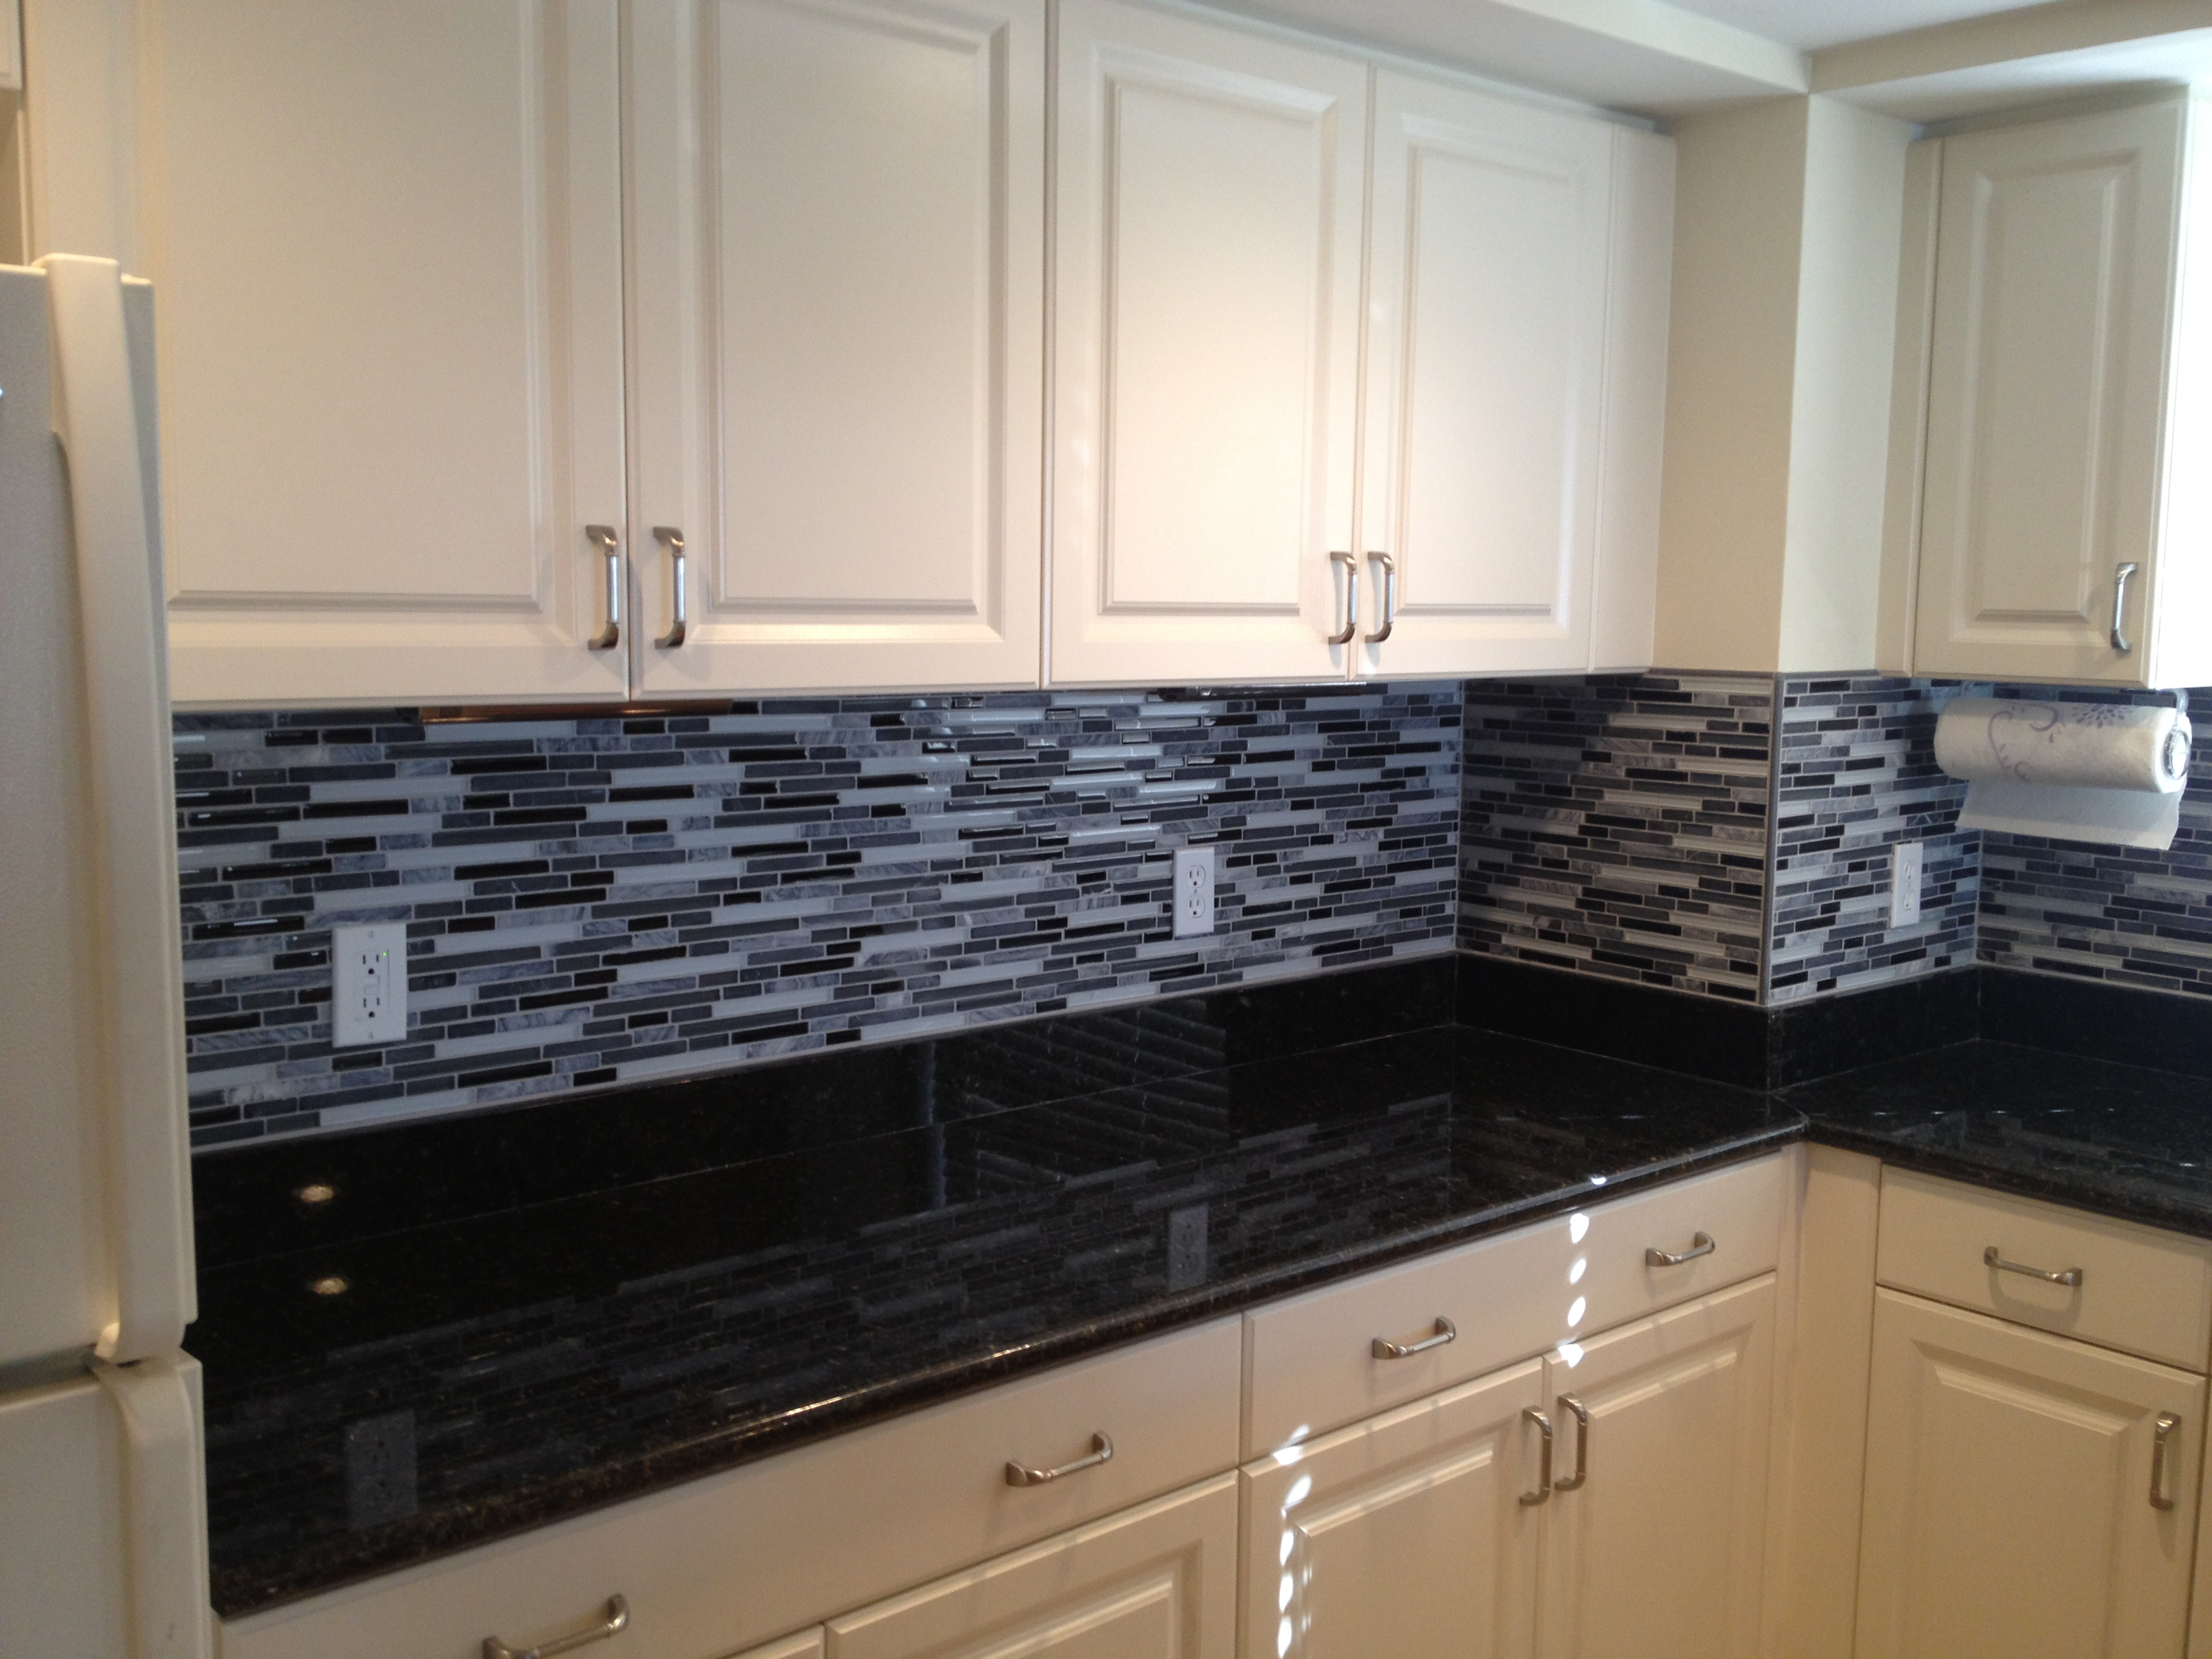 Subway-Tile-Backsplash-White-Kitchen-Cabinets-with-Granite